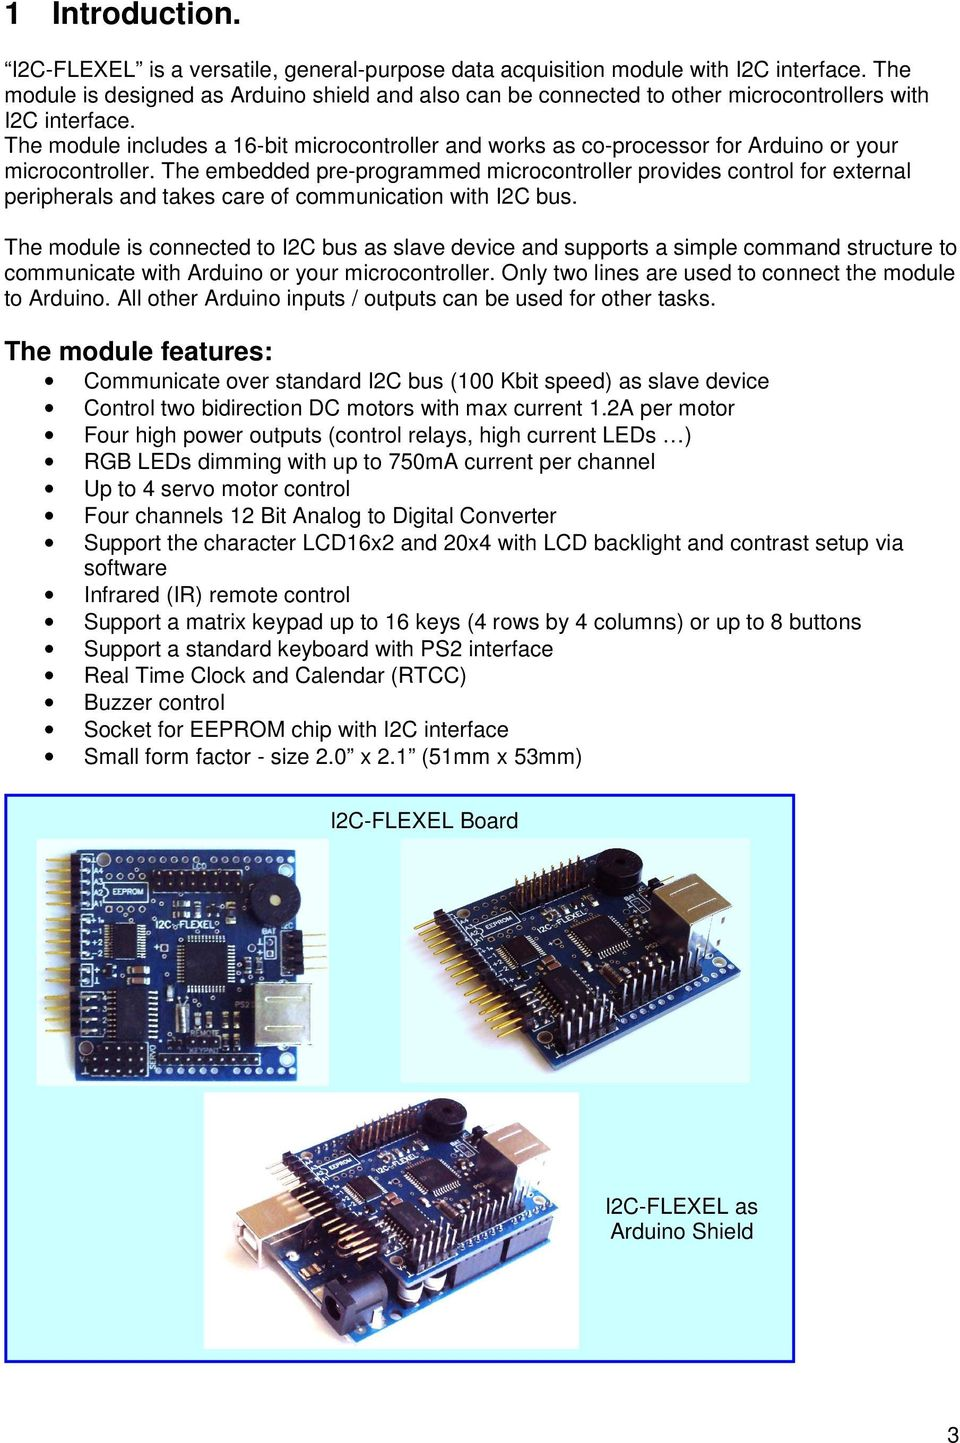 The module includes a 16-bit microcontroller and works as co-processor for Arduino or your microcontroller.